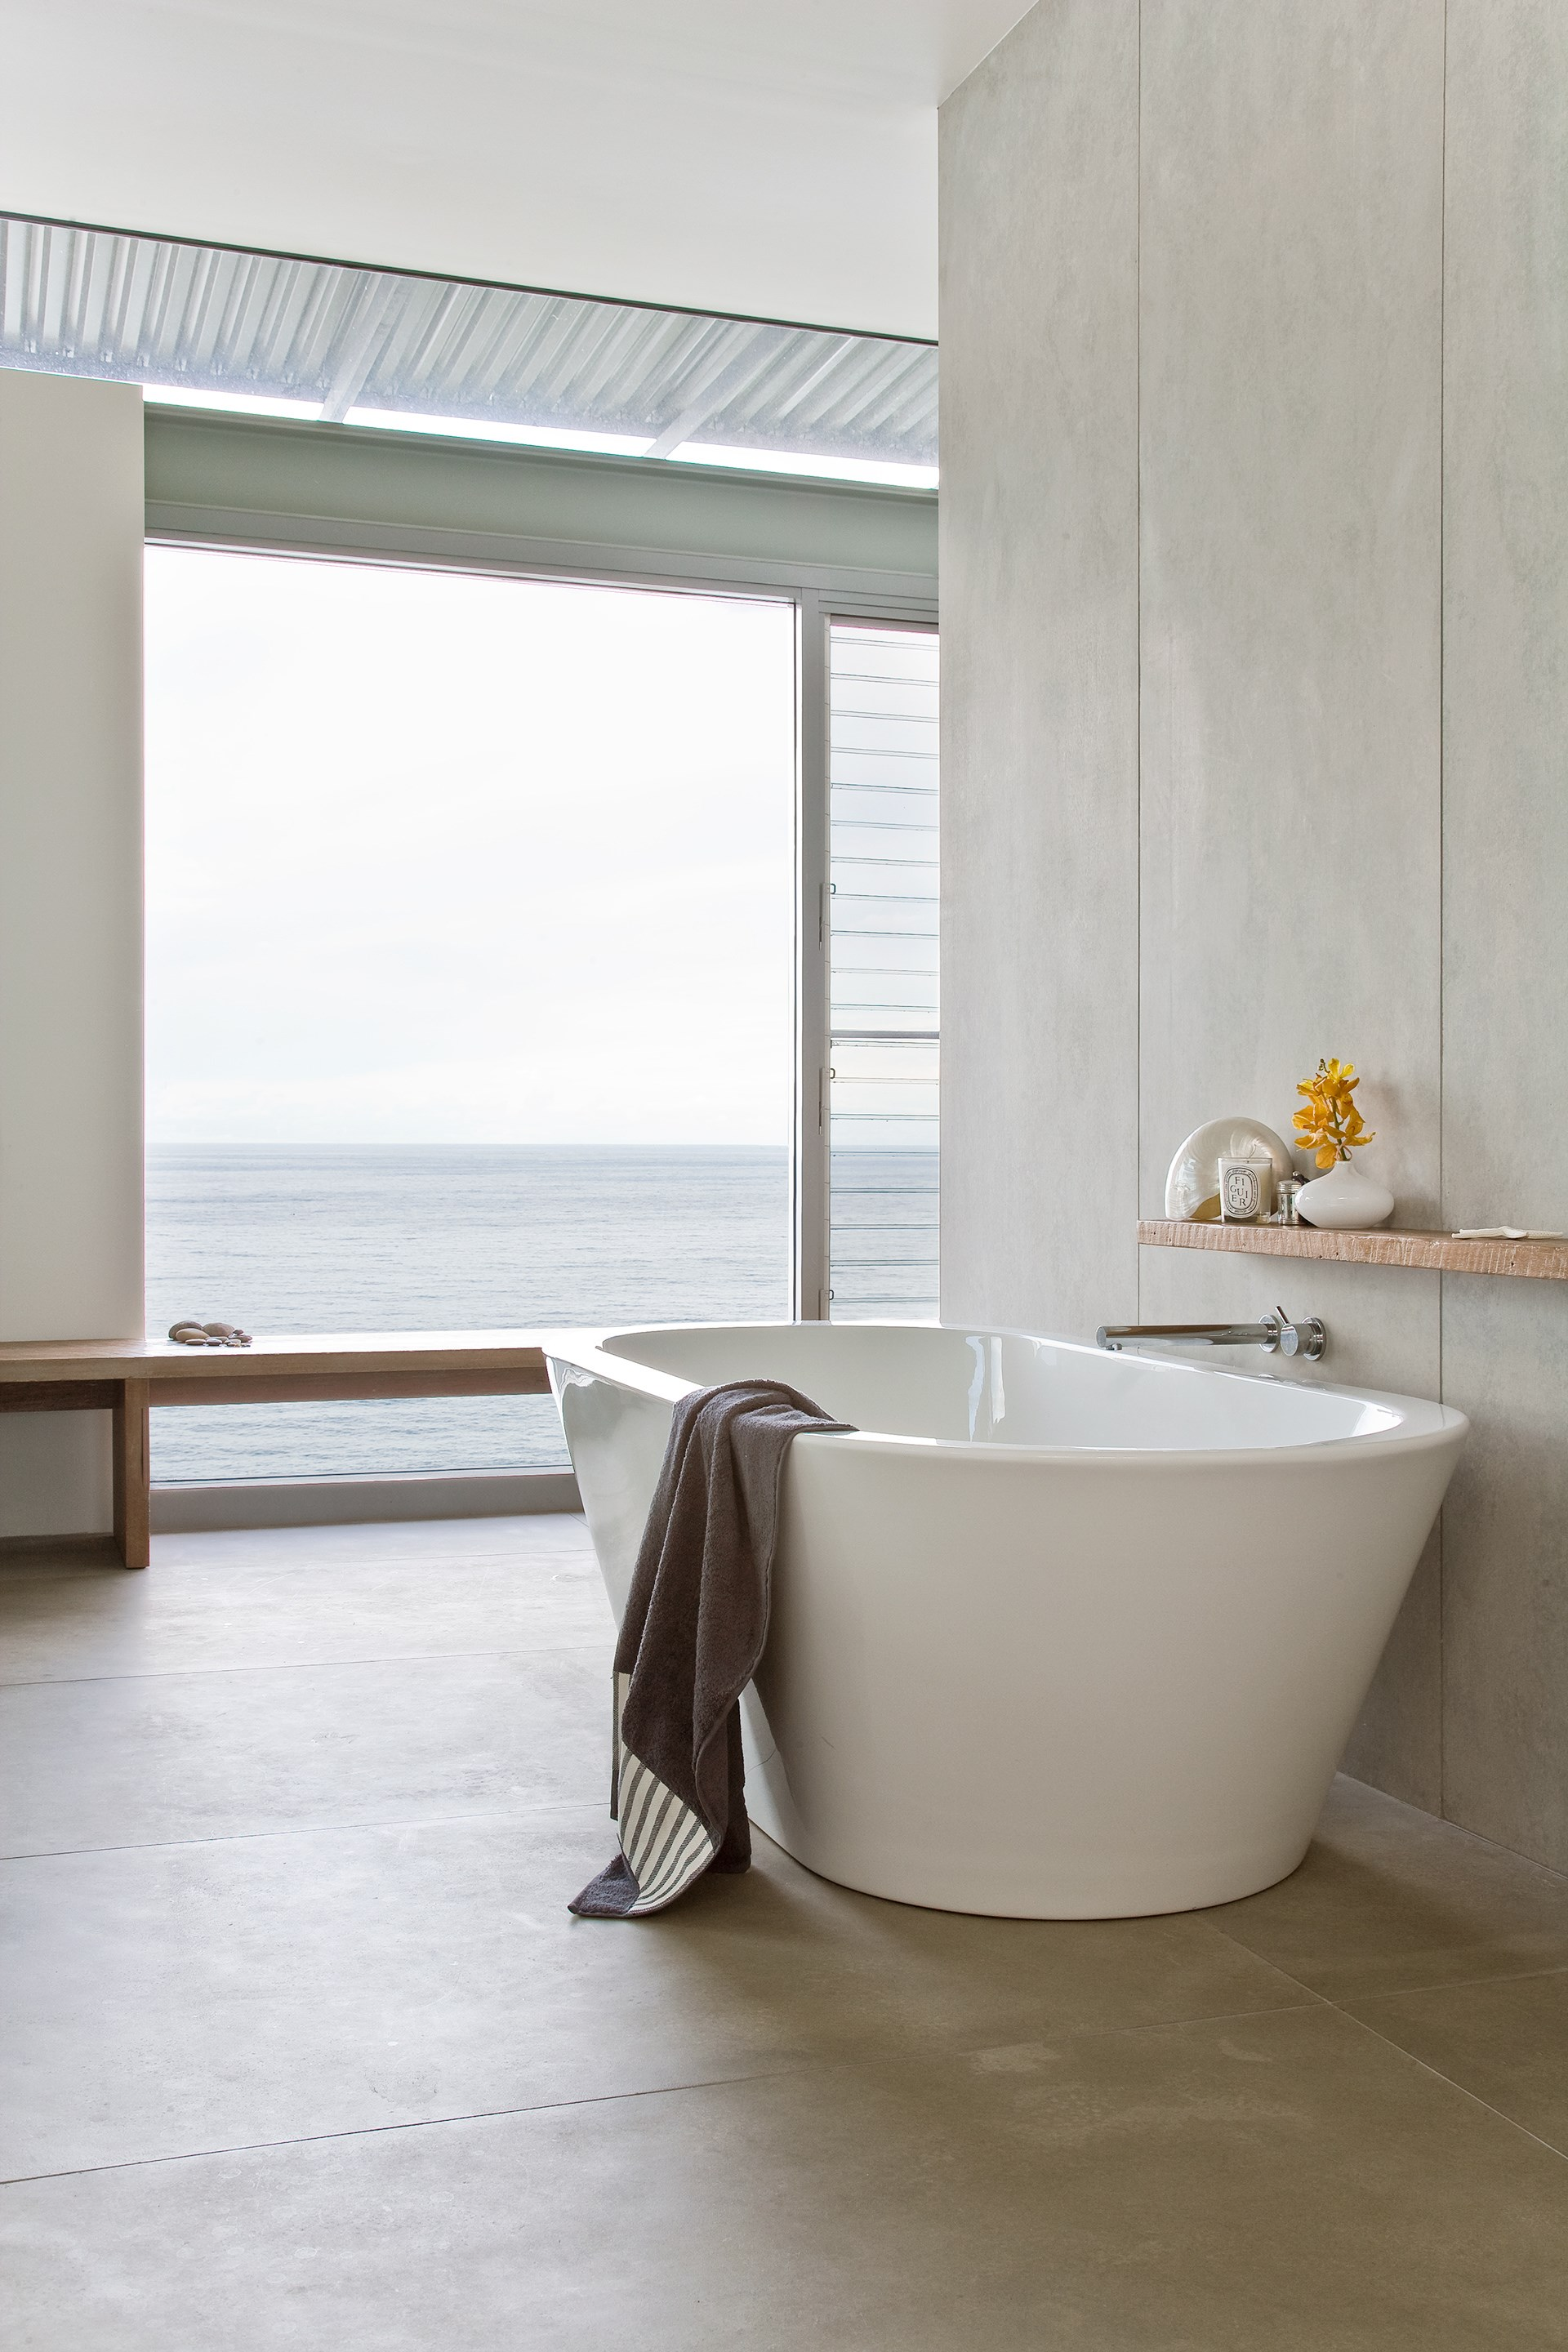 """Minimal detailing lets the ocean views shine in the bathroom of this [South Coast home](http://www.homestolove.com.au/city-to-surf-one-couples-south-coast-sea-change-3574